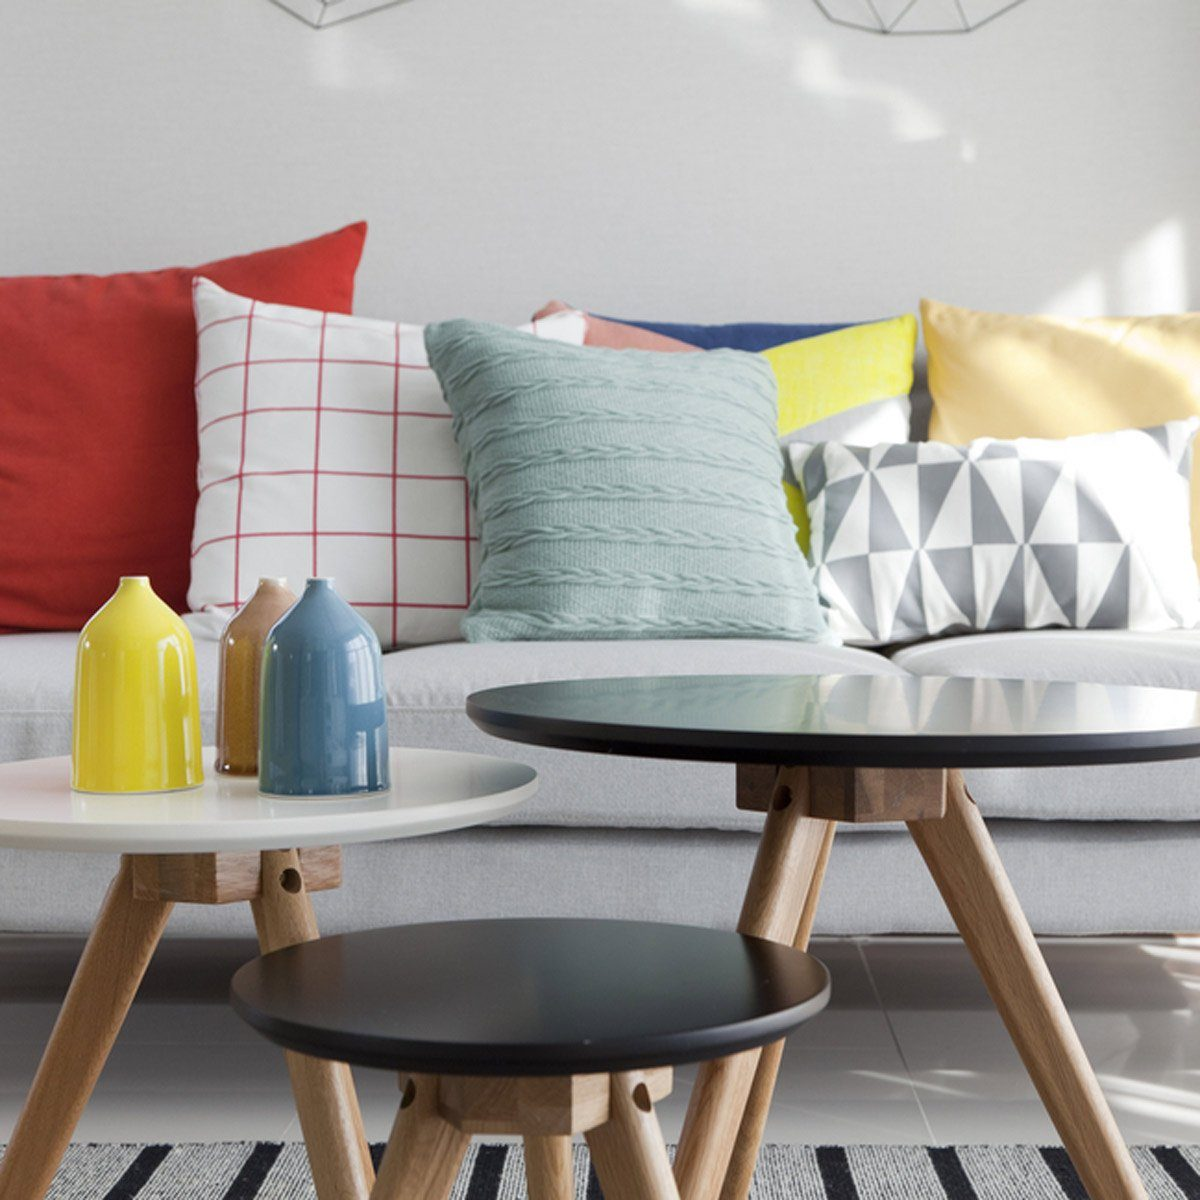 Interior Design Tips: Pile on the Pillows